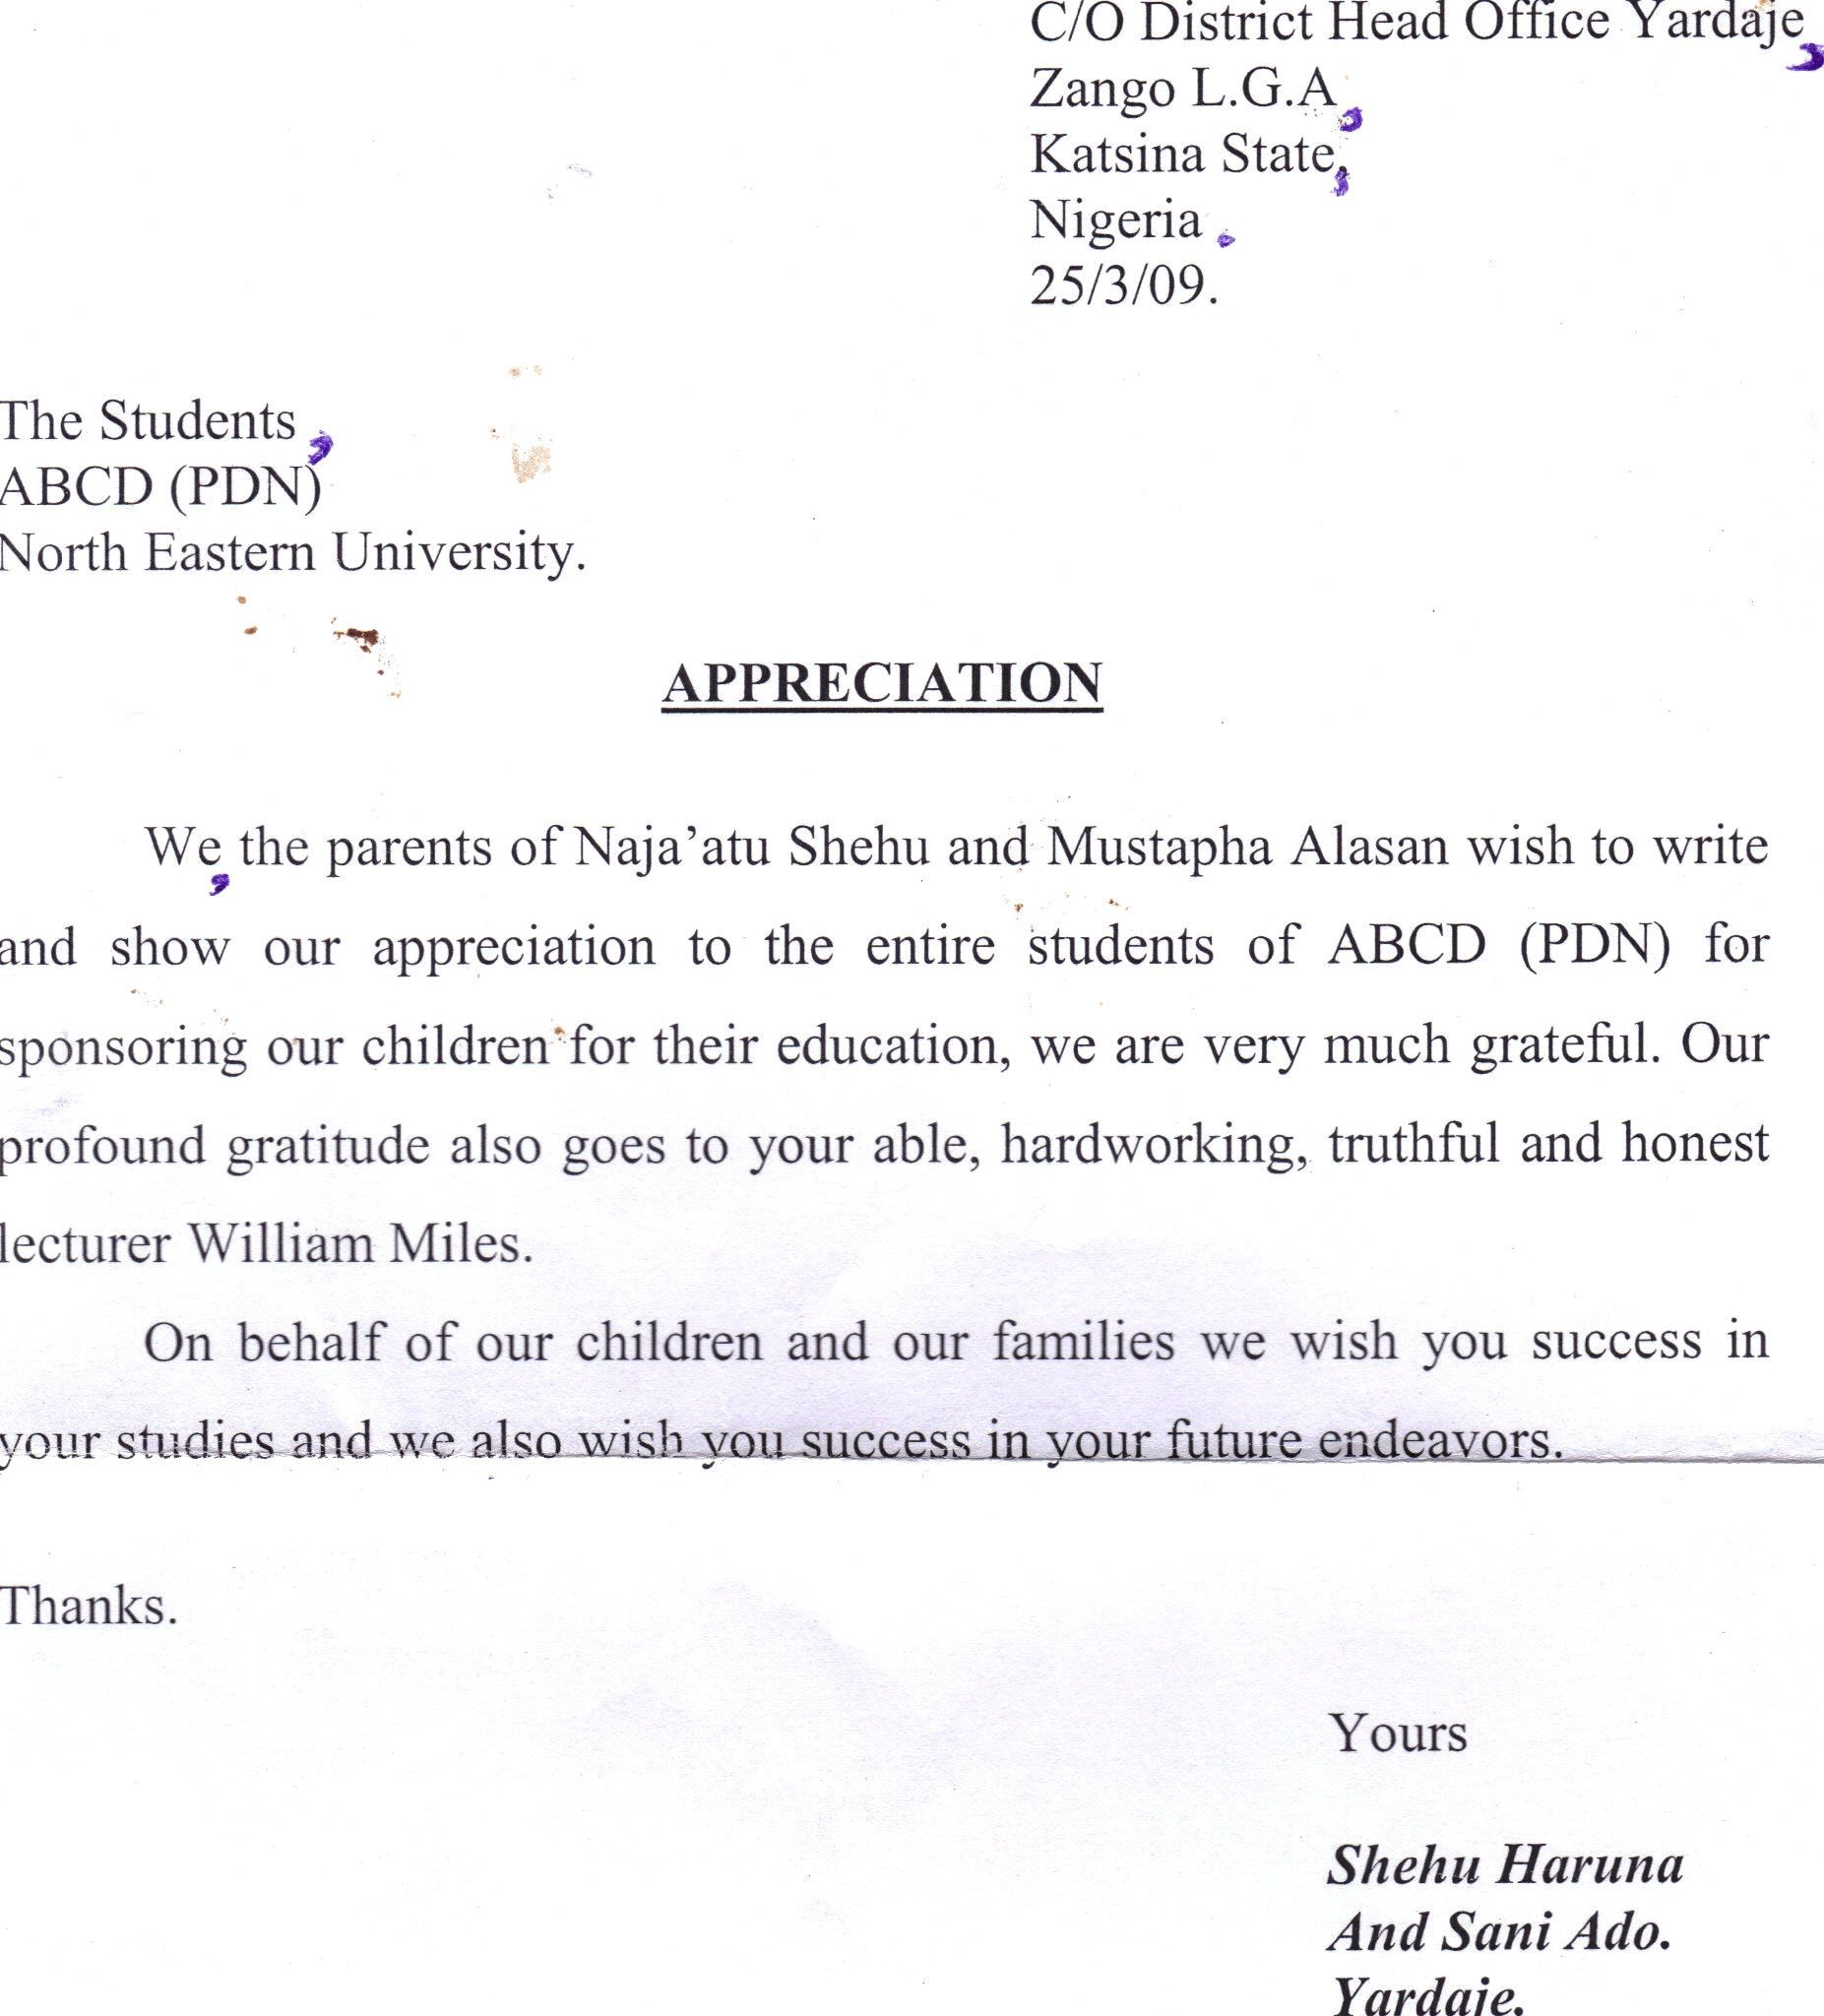 scholarship letter of appreciation unique secondary school curriculum vitae hobbies and interests examples federal resume cover example sample word doc